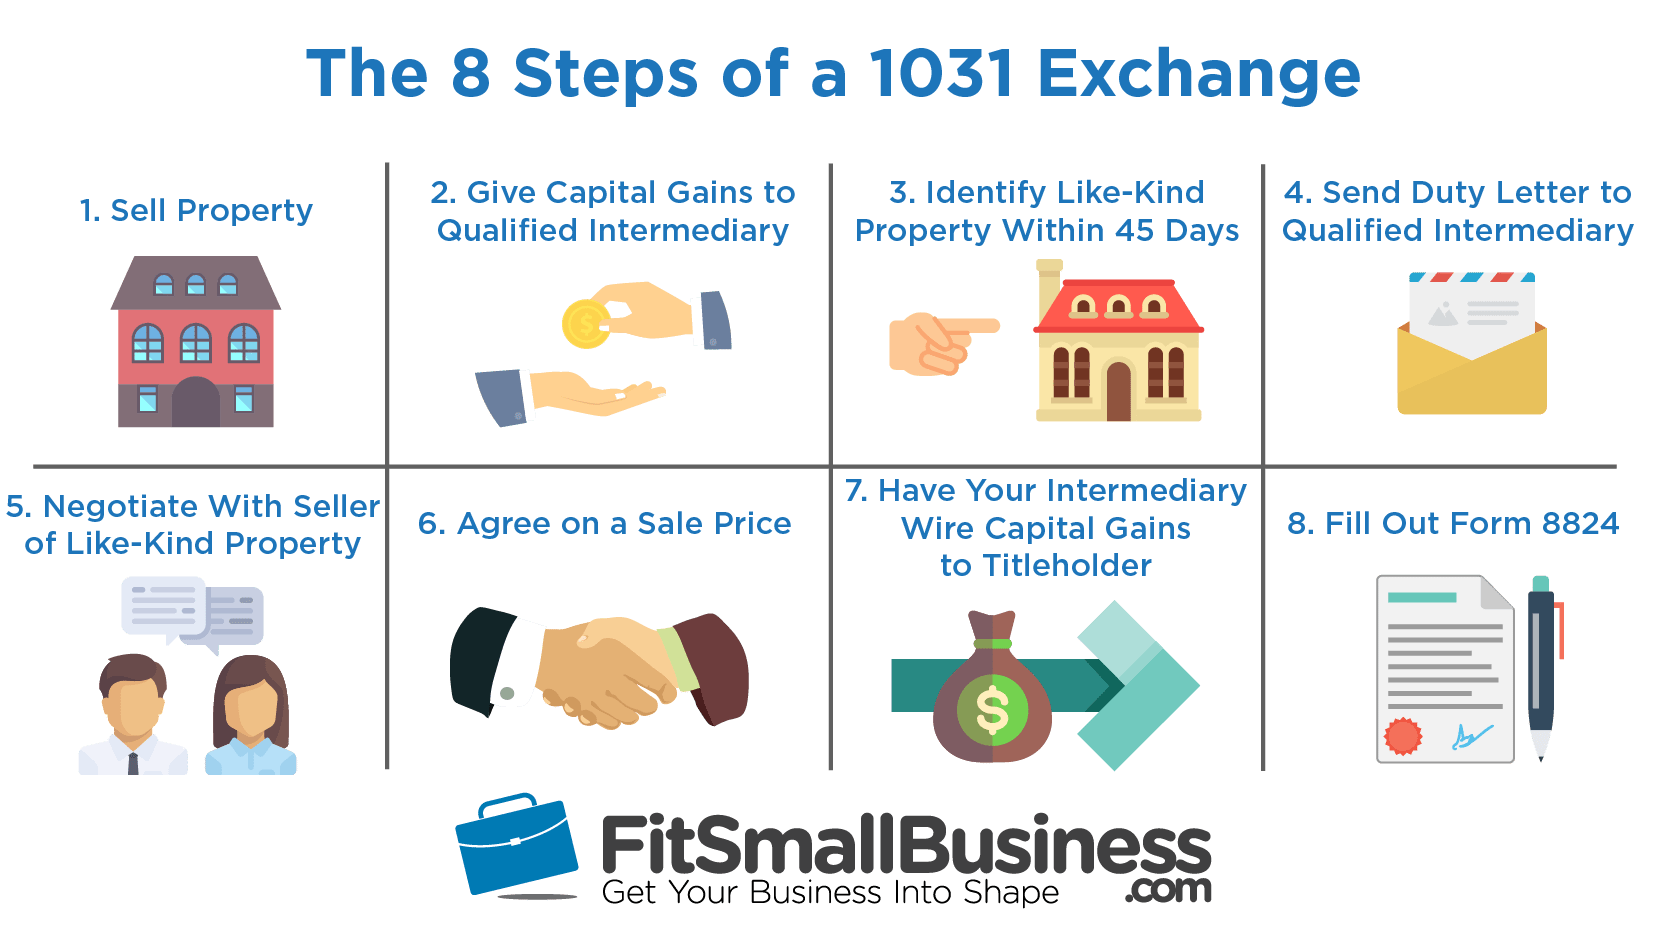 1031 Tax Deferred Exchange Rules